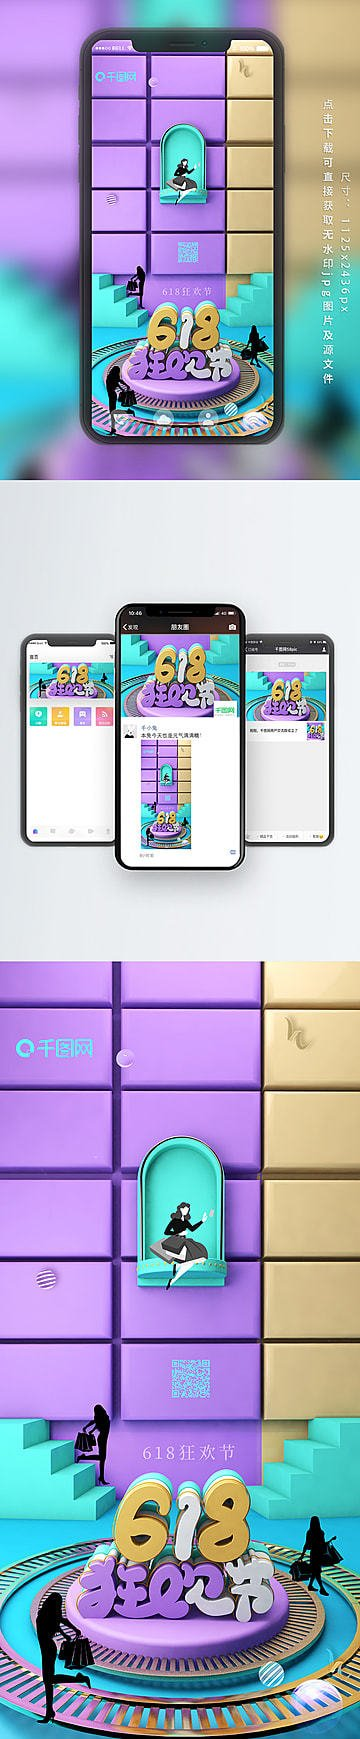 618 618 poster 618 shopping festival 618 event Template